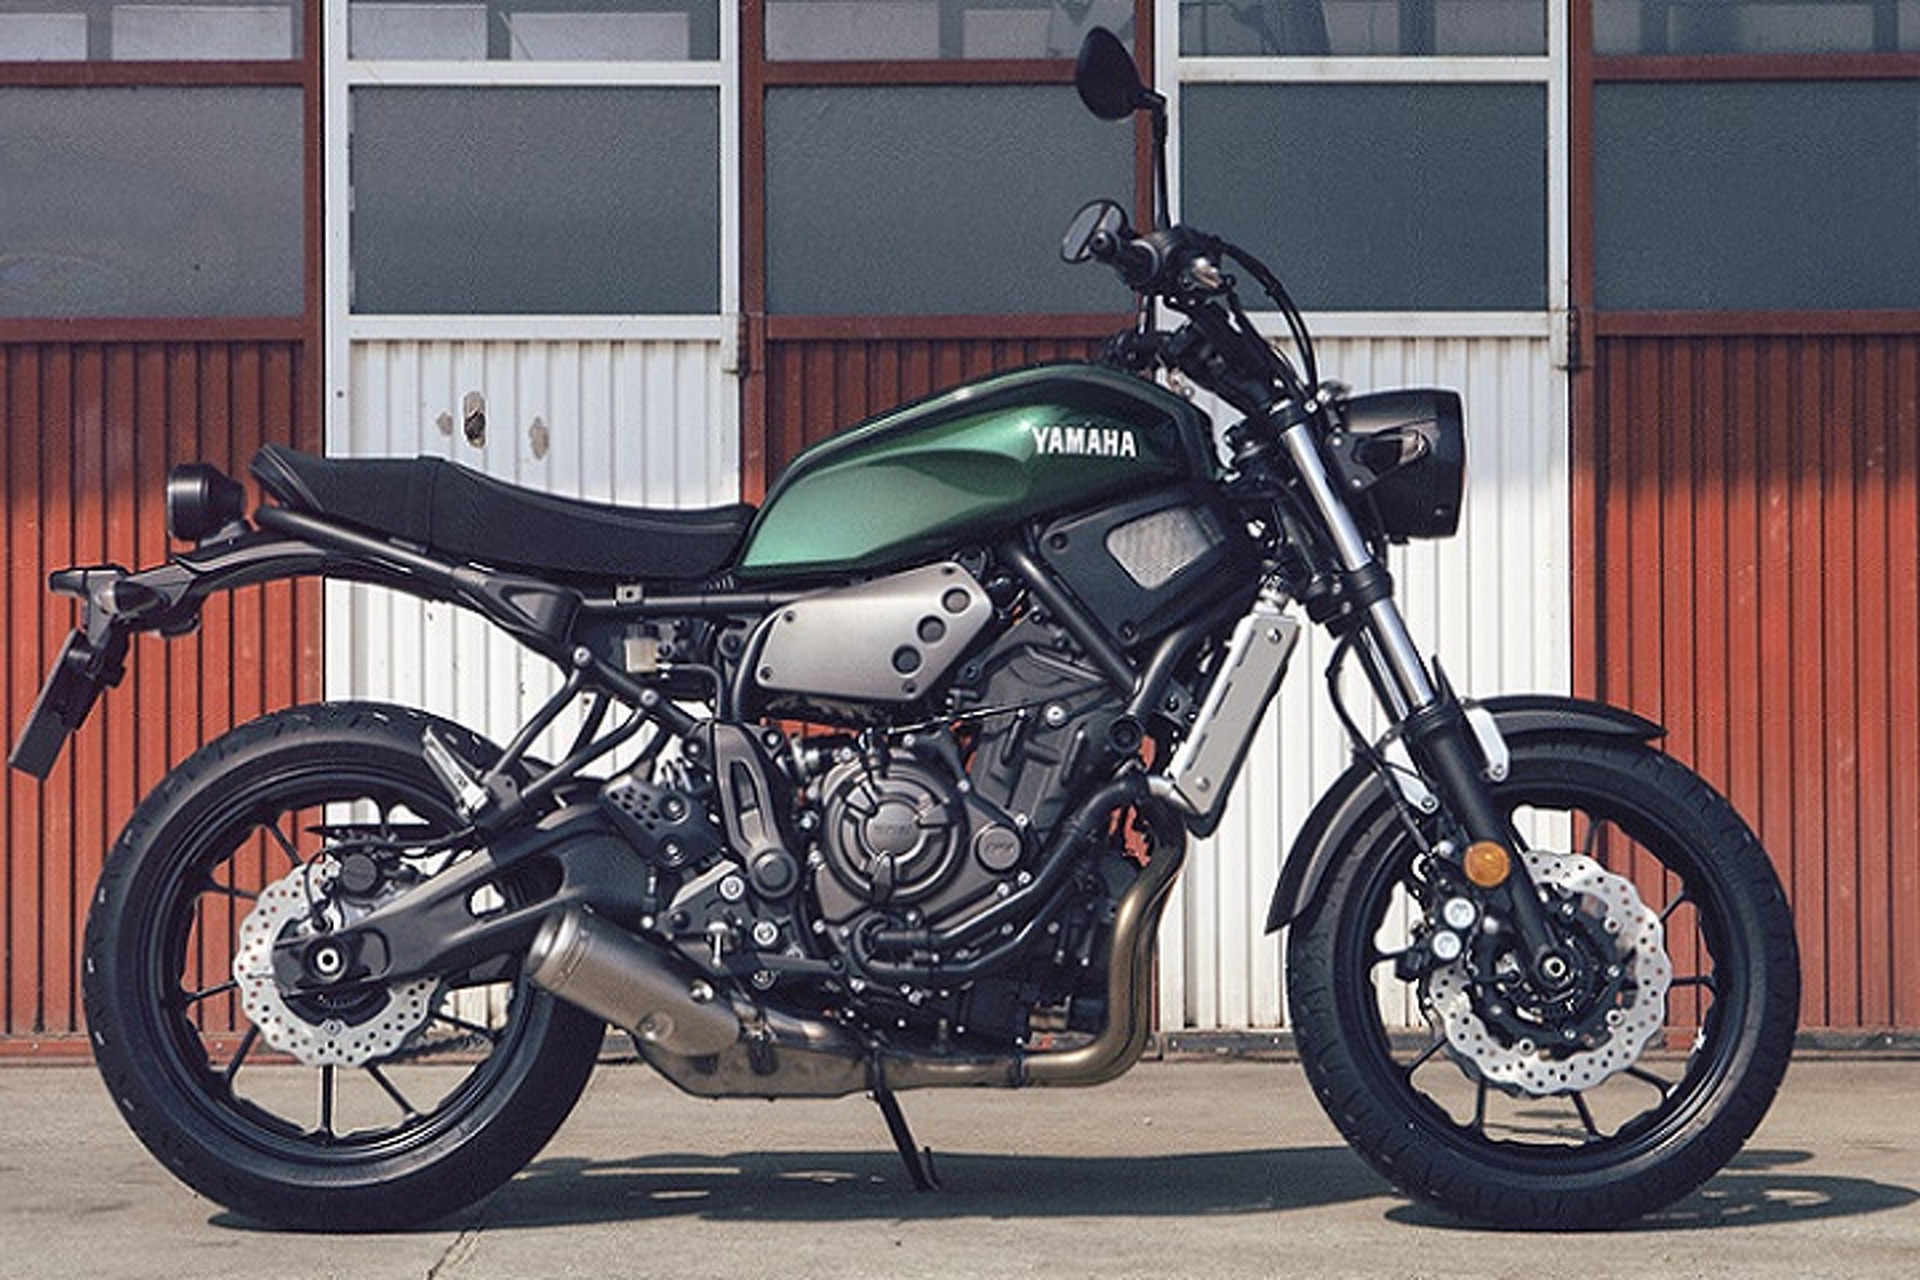 2016 Yamaha XSR700 is Retro-Modern Design at Its Finest